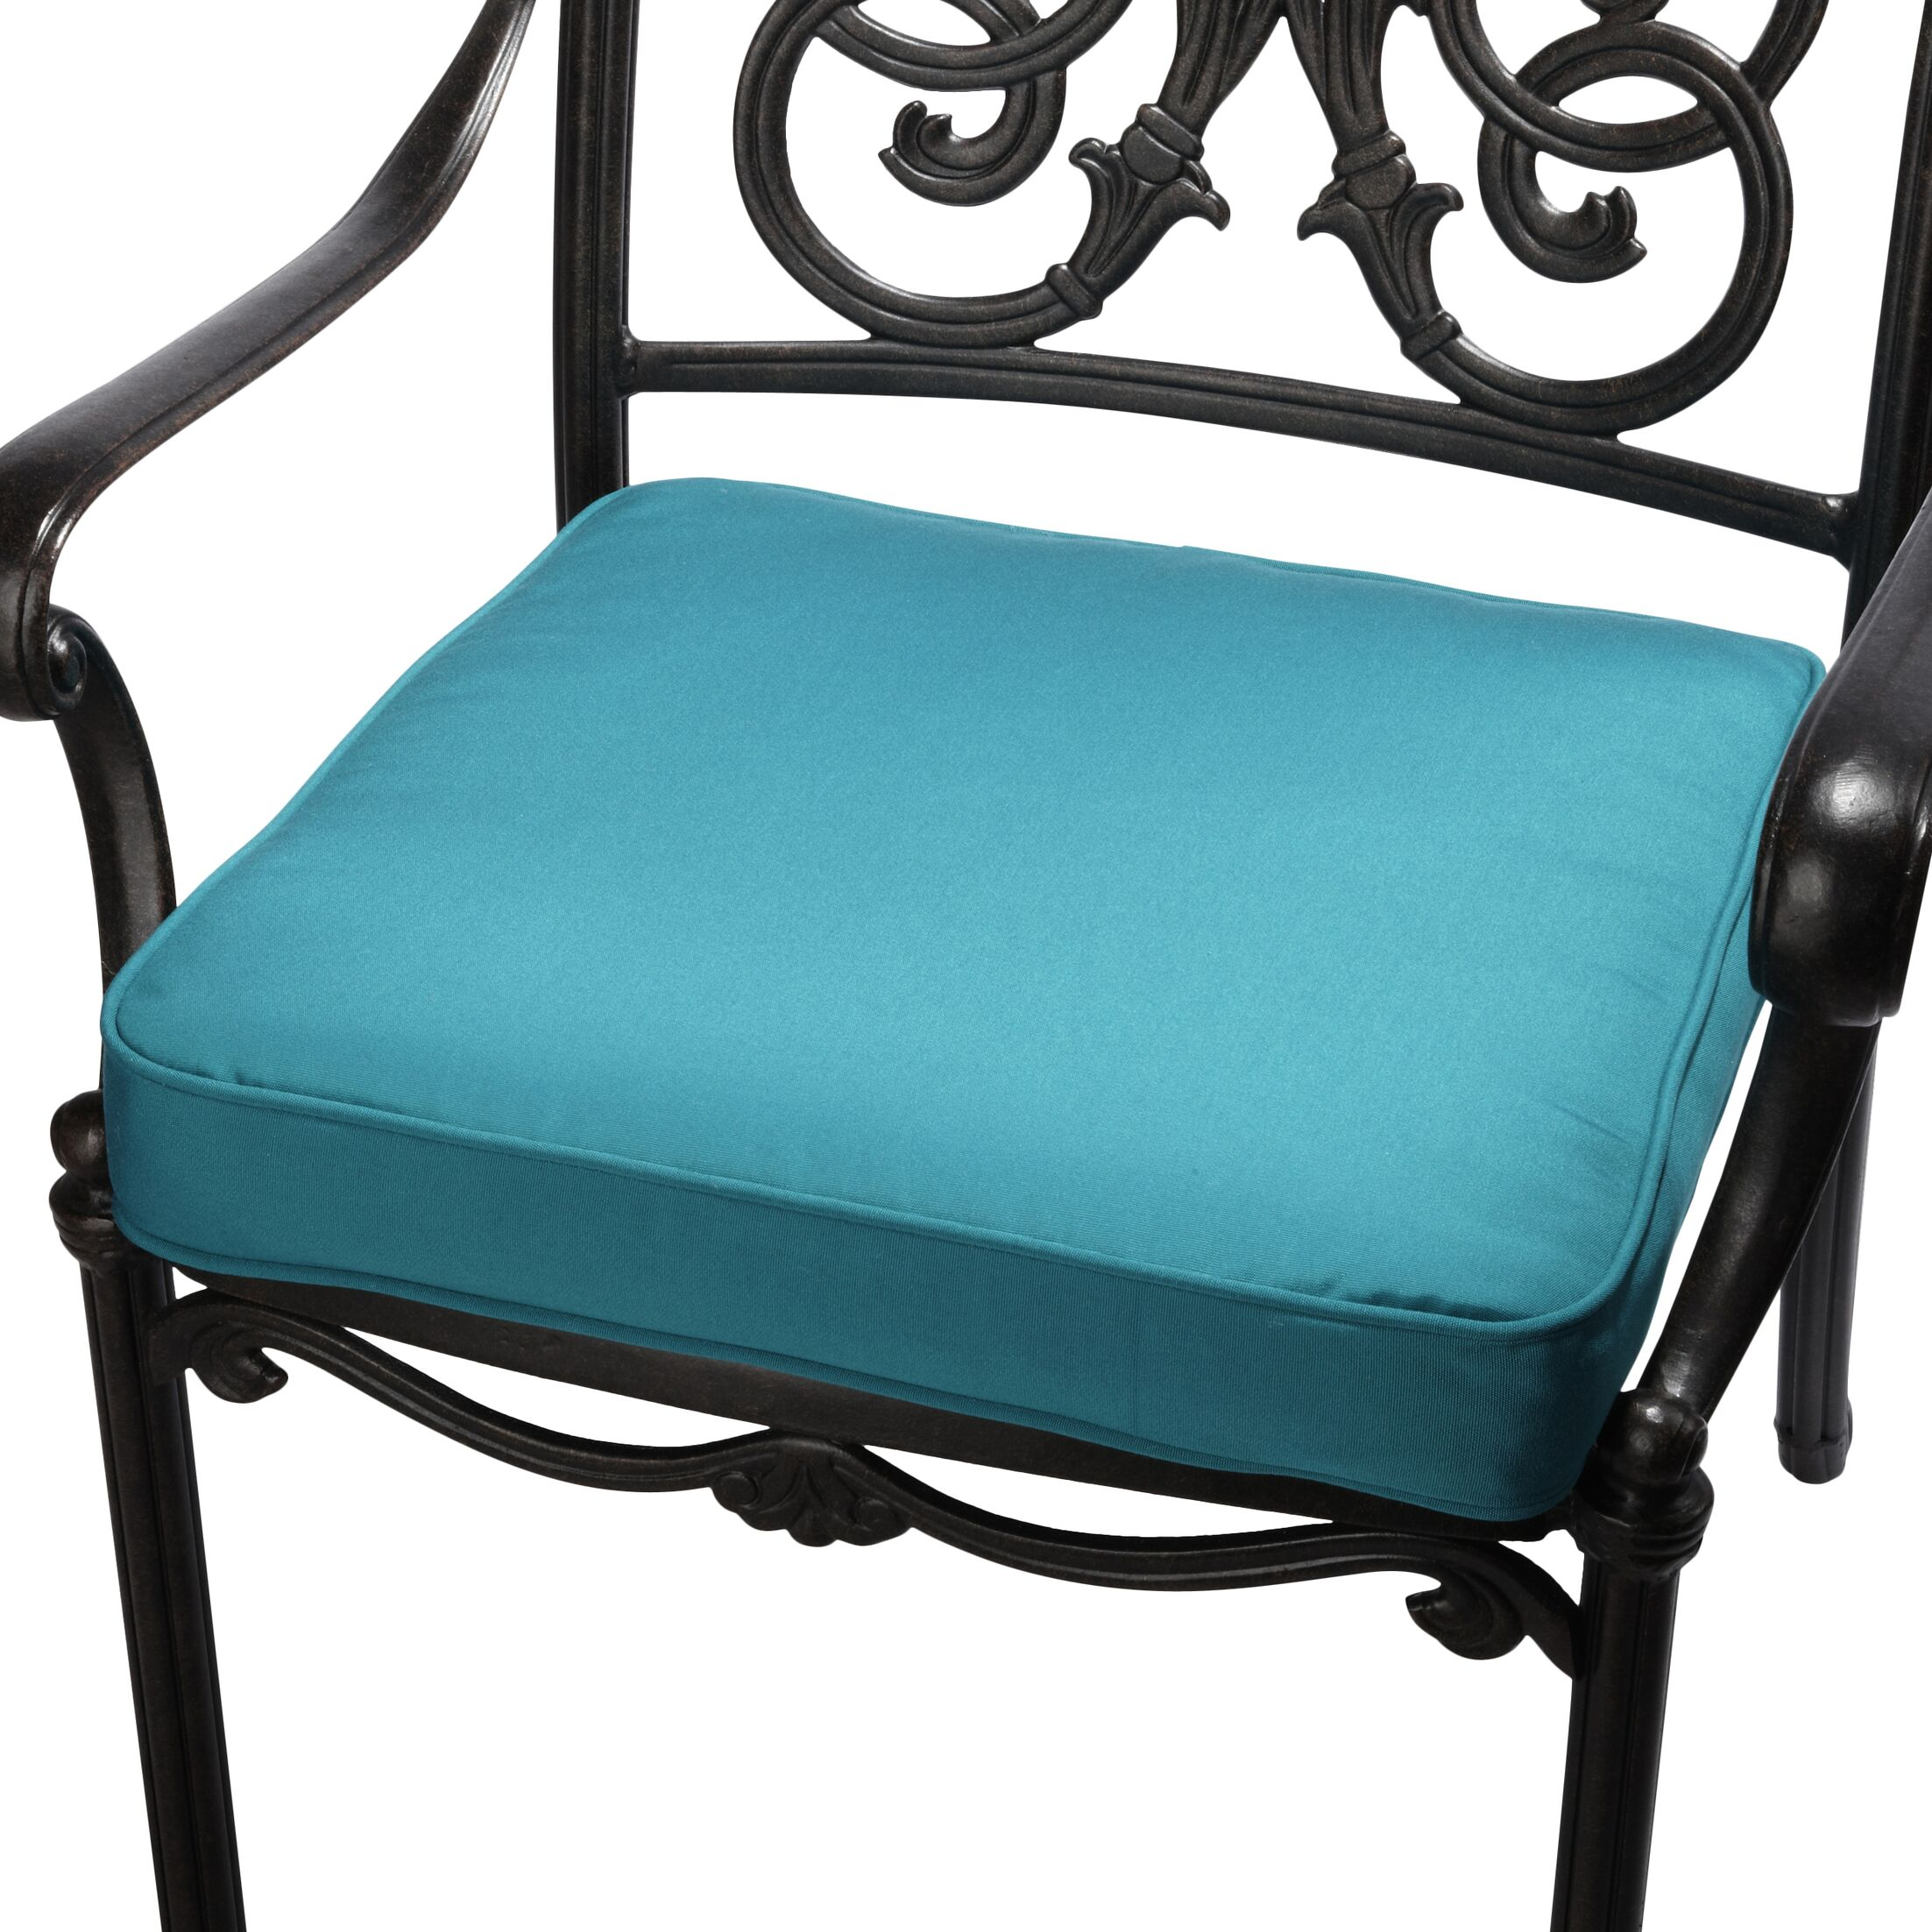 Indoor/Outdoor Sunbrella Dining Chair Seat Cushion Size: 20